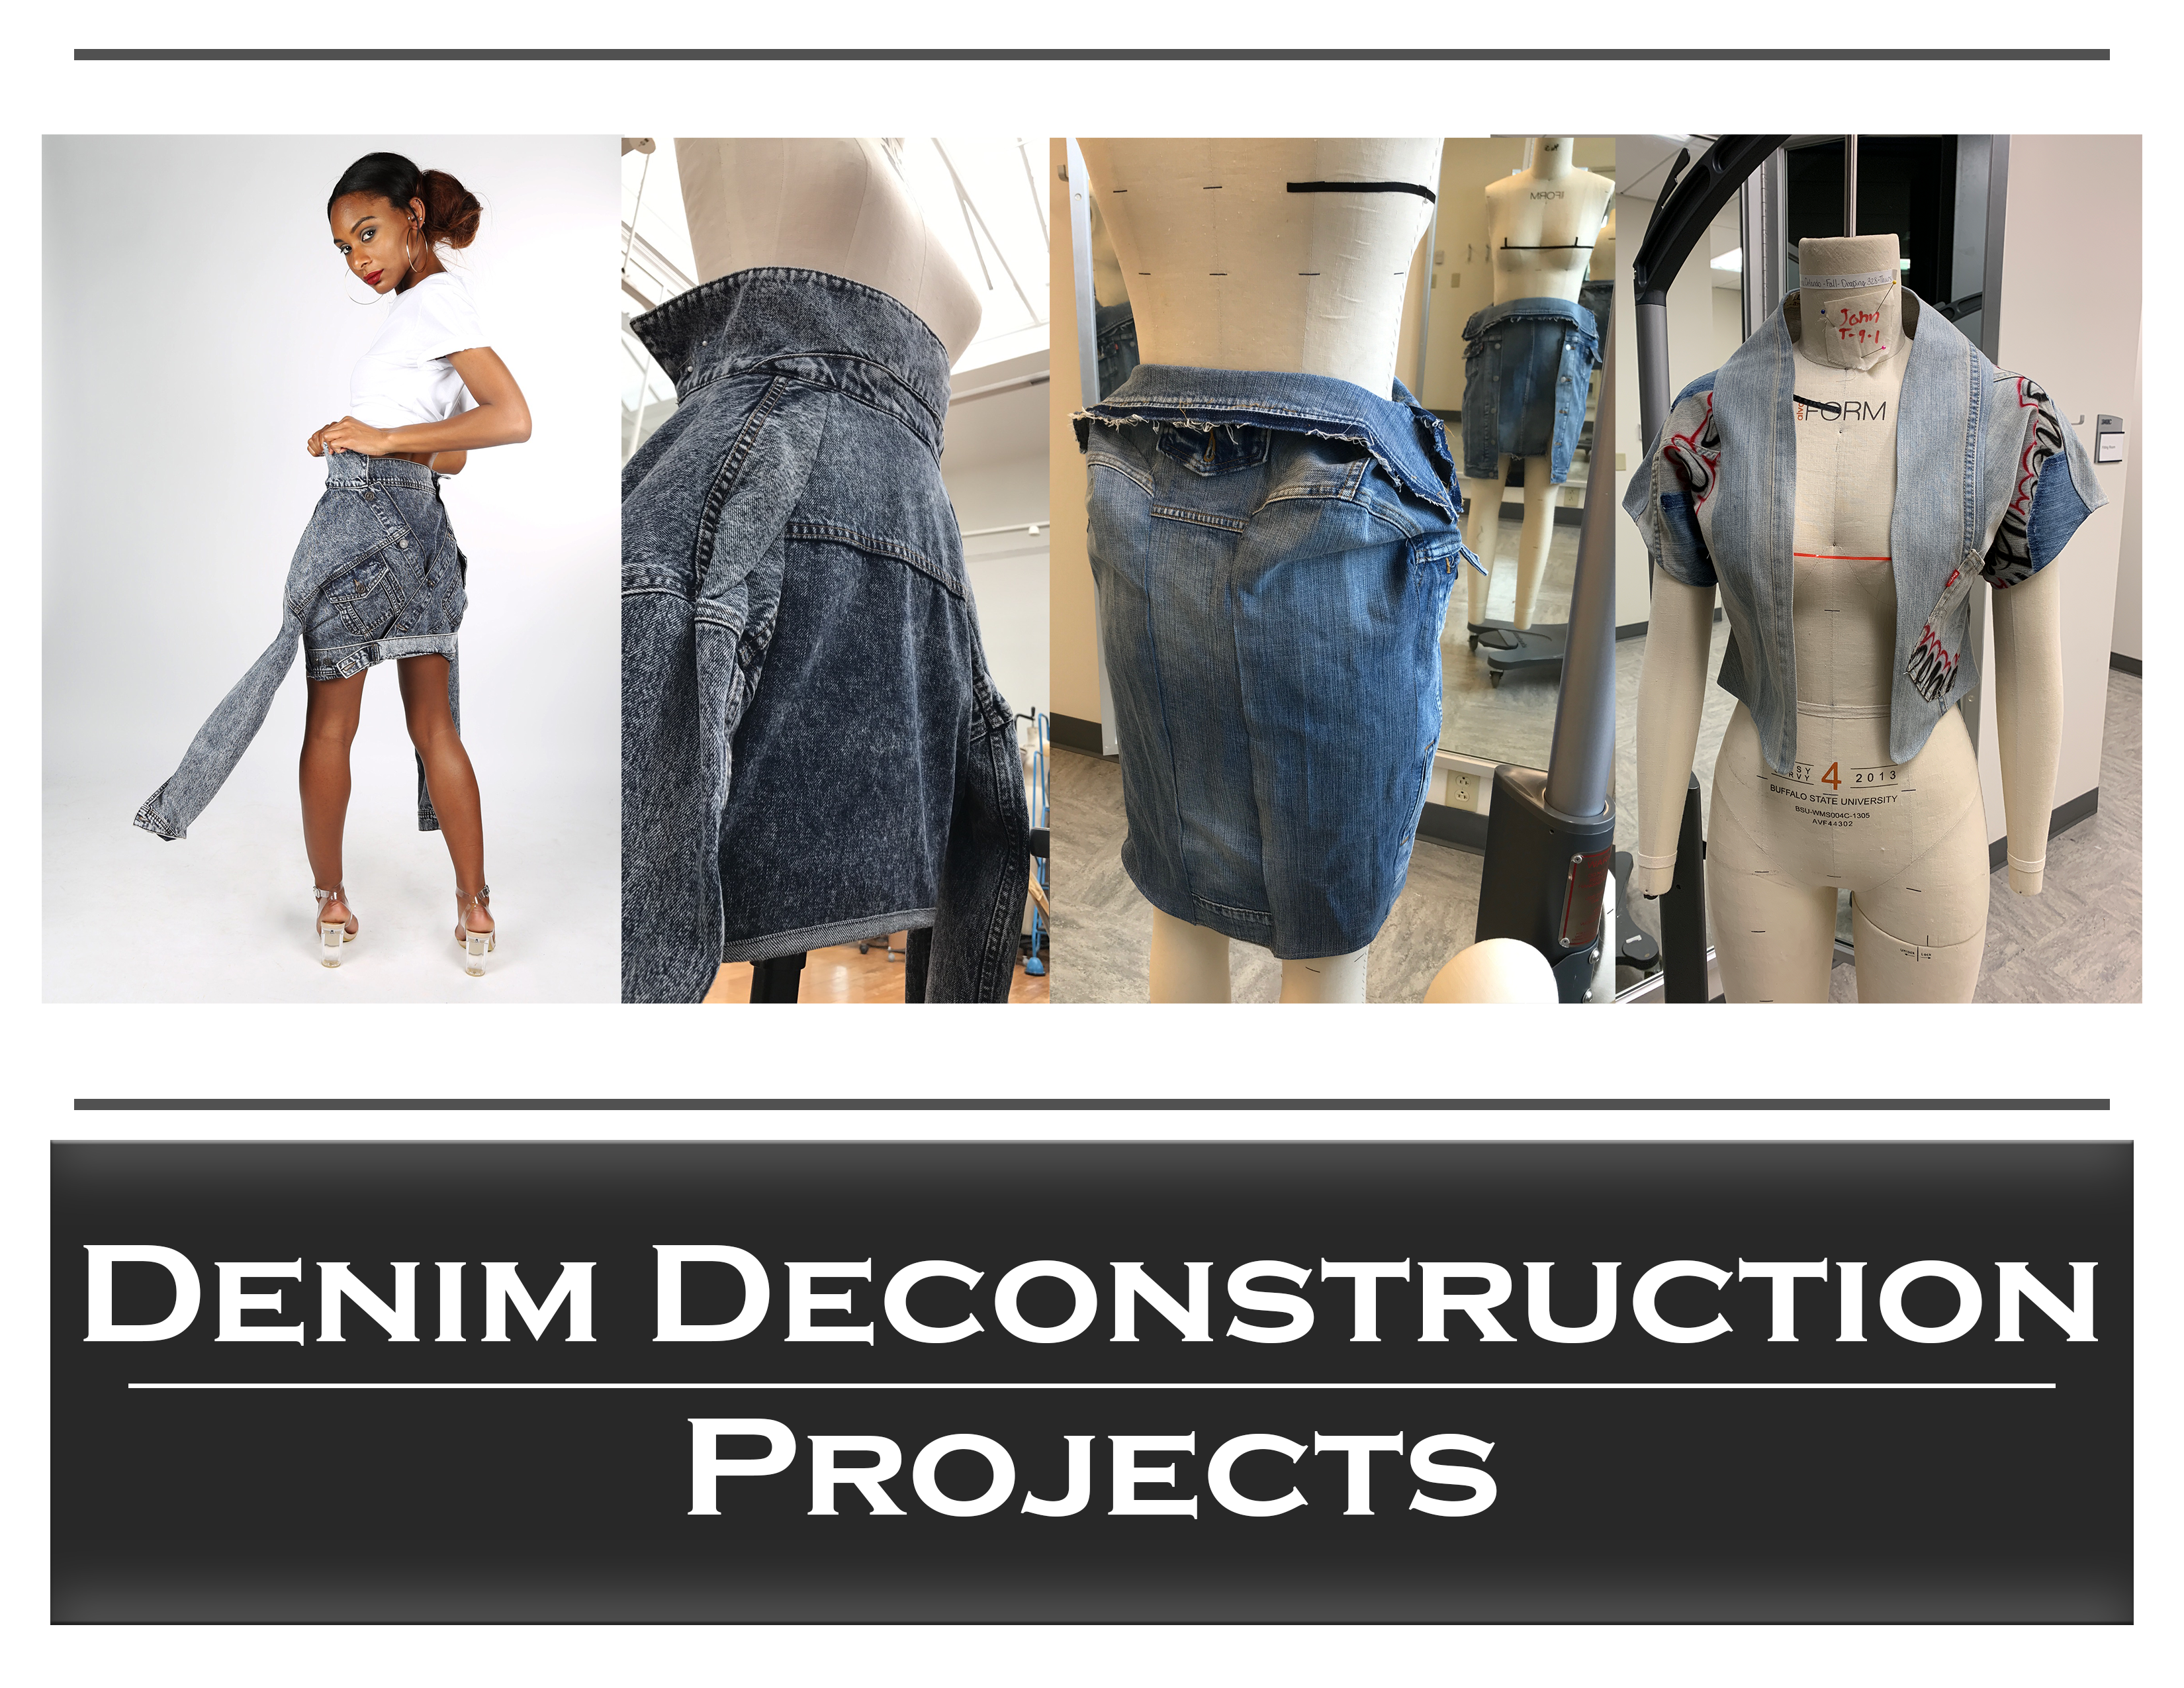 Slide 9 - Denim Reconstriction